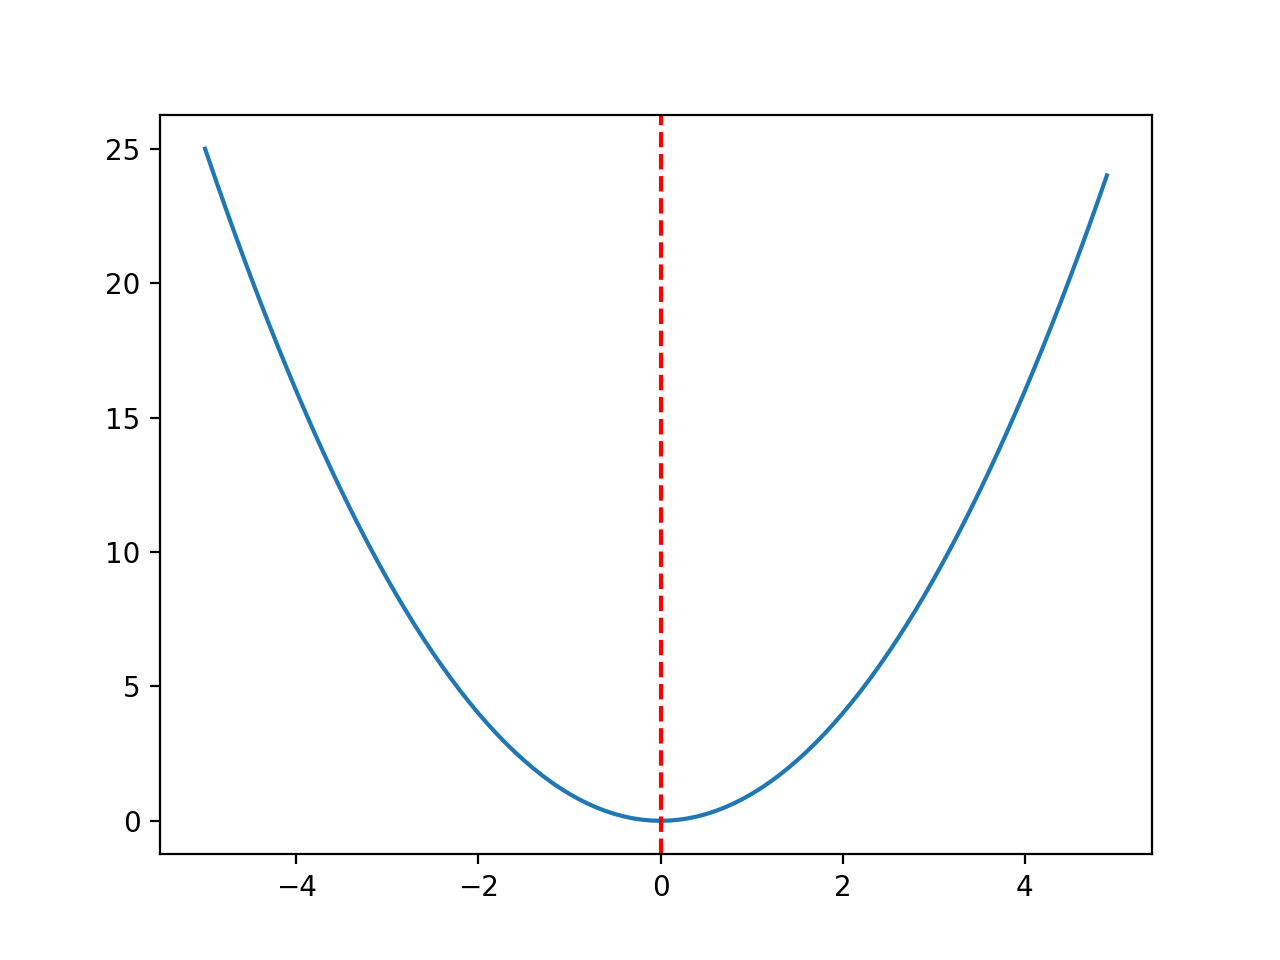 Line Plot of a One-Dimensional Function With Optima Marked by a Red Line